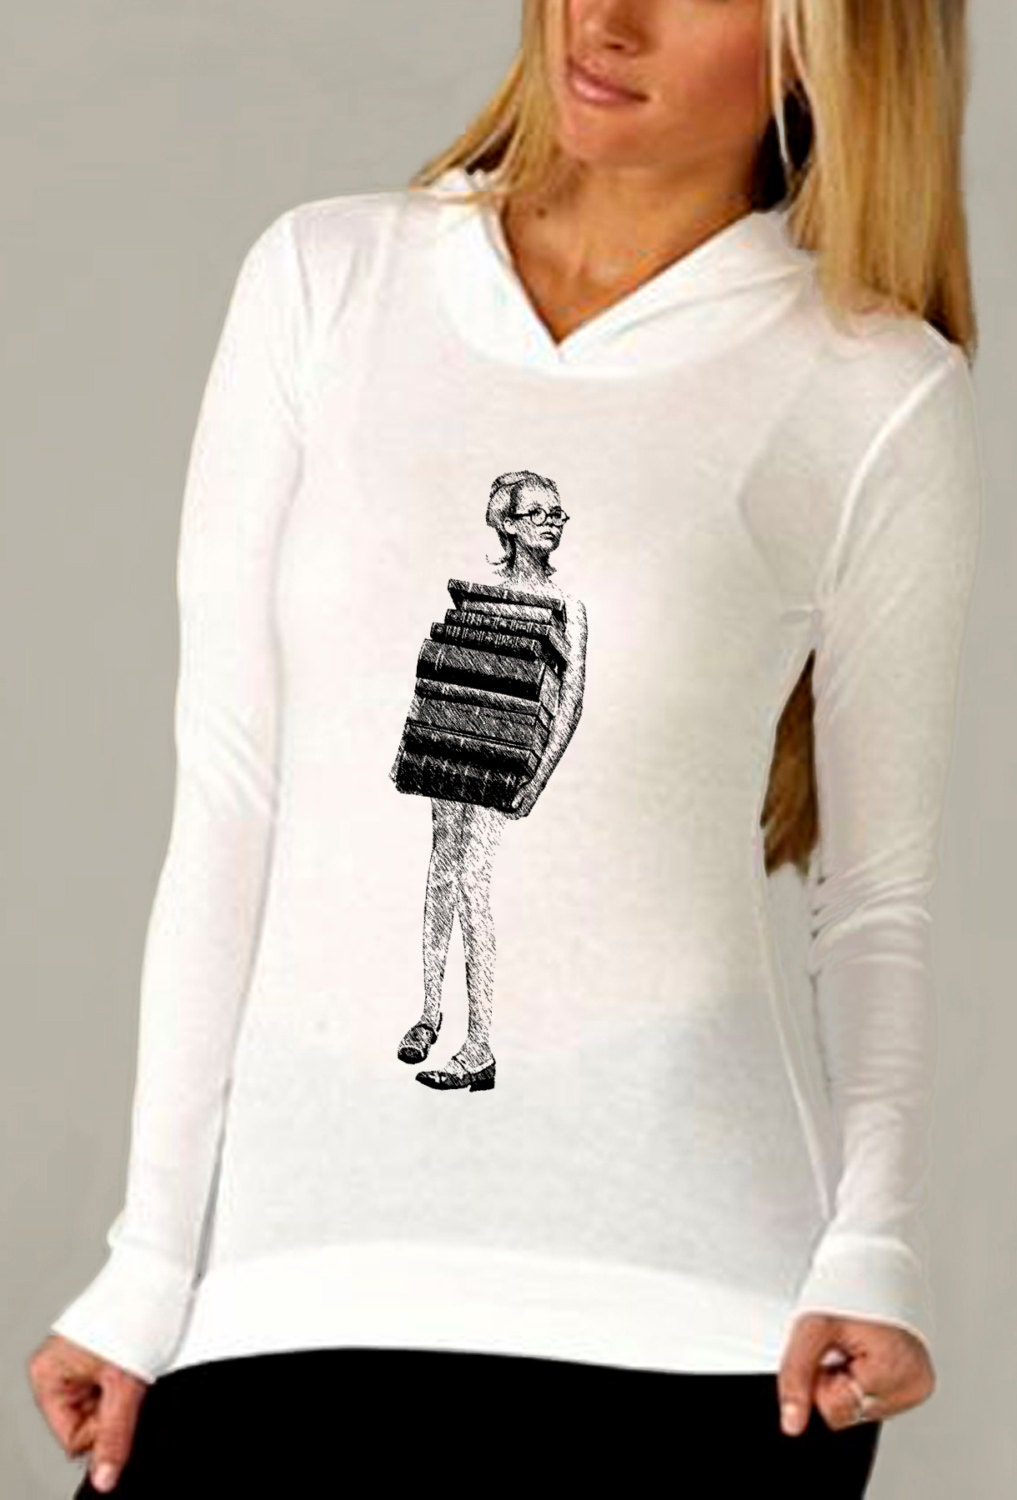 book shirt shirt - vintage design JUST BOOKS - women's white long sleeve thermal hoodie book t-shirt